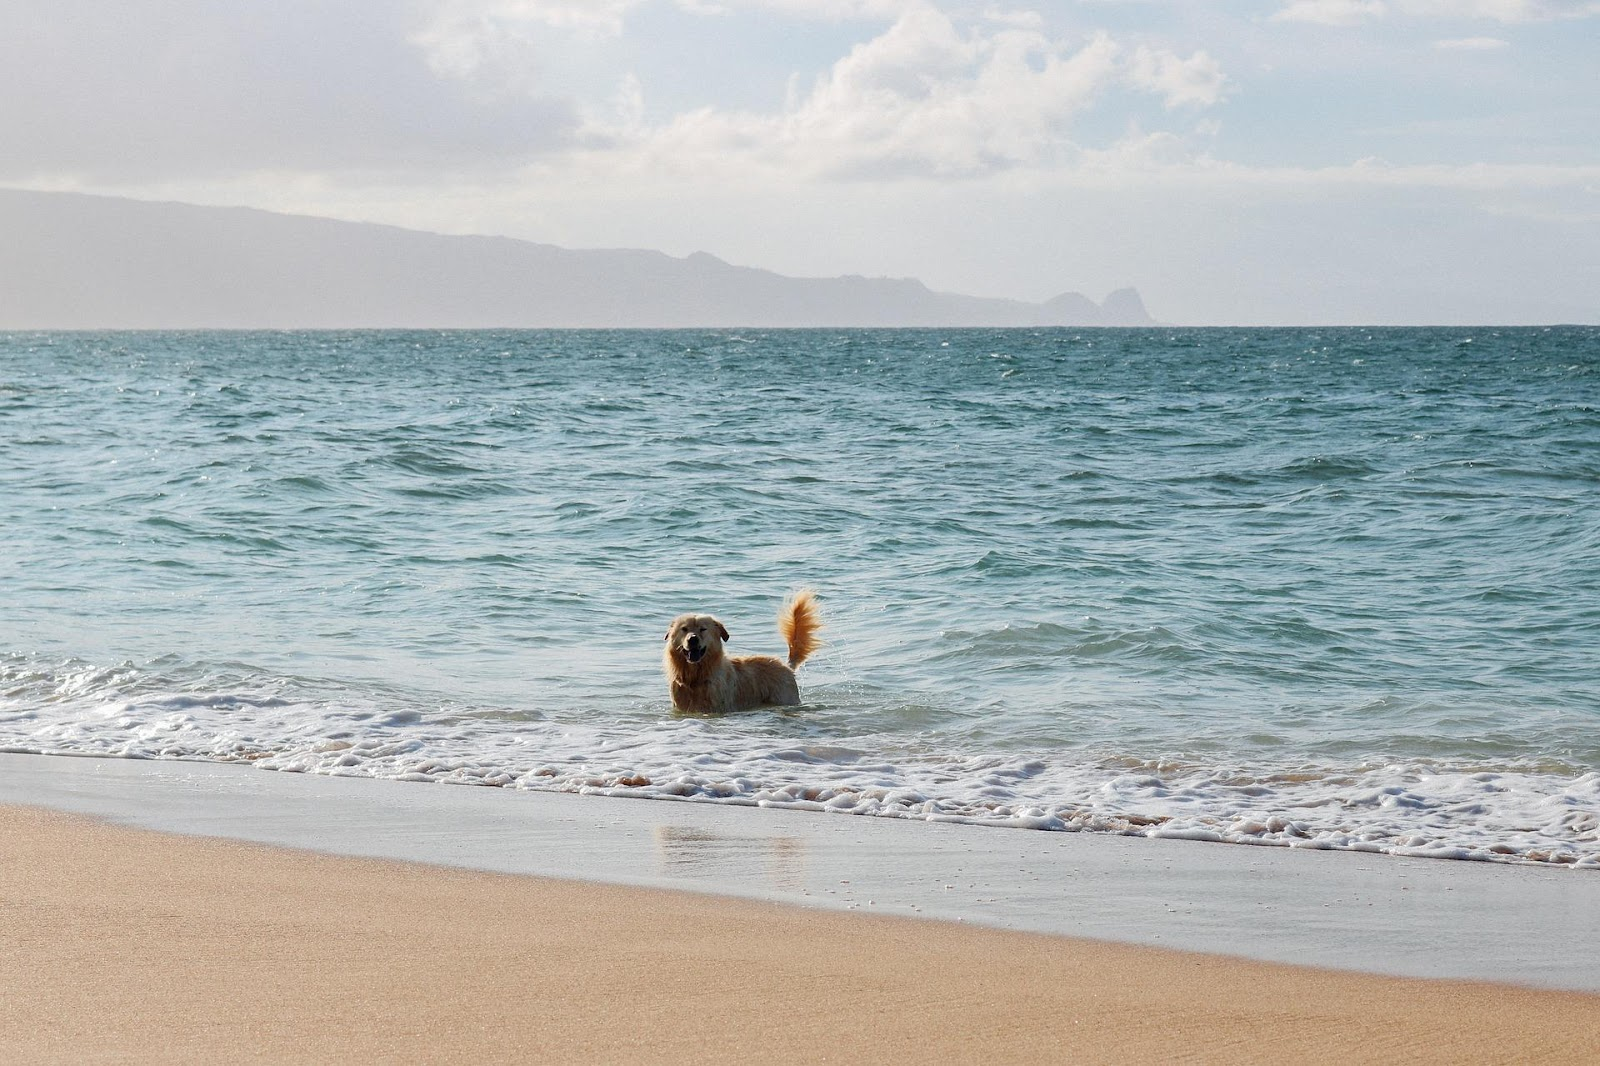 A dog playing in the ocean